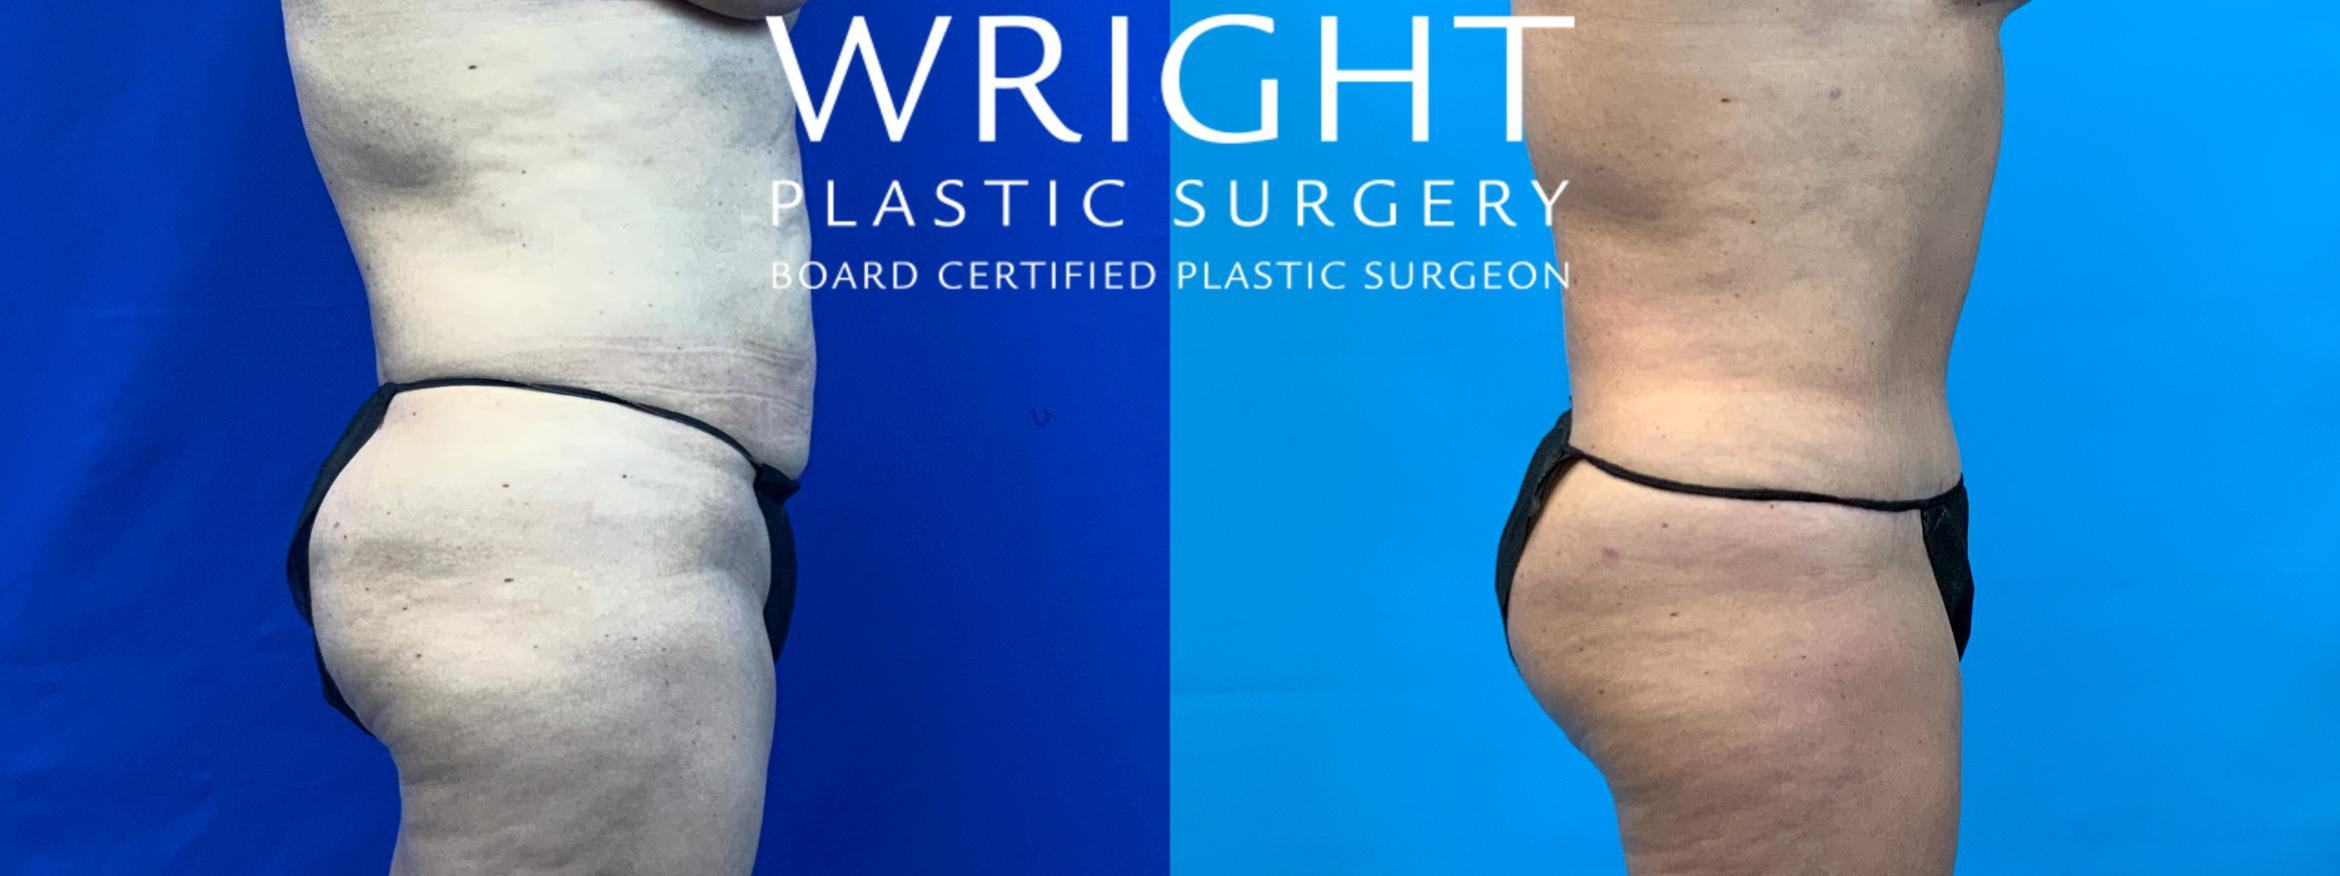 Tummy Tuck Case 61 Before & After Right Side | Little Rock, Arkansas | Dr. Wright Plastic Surgery